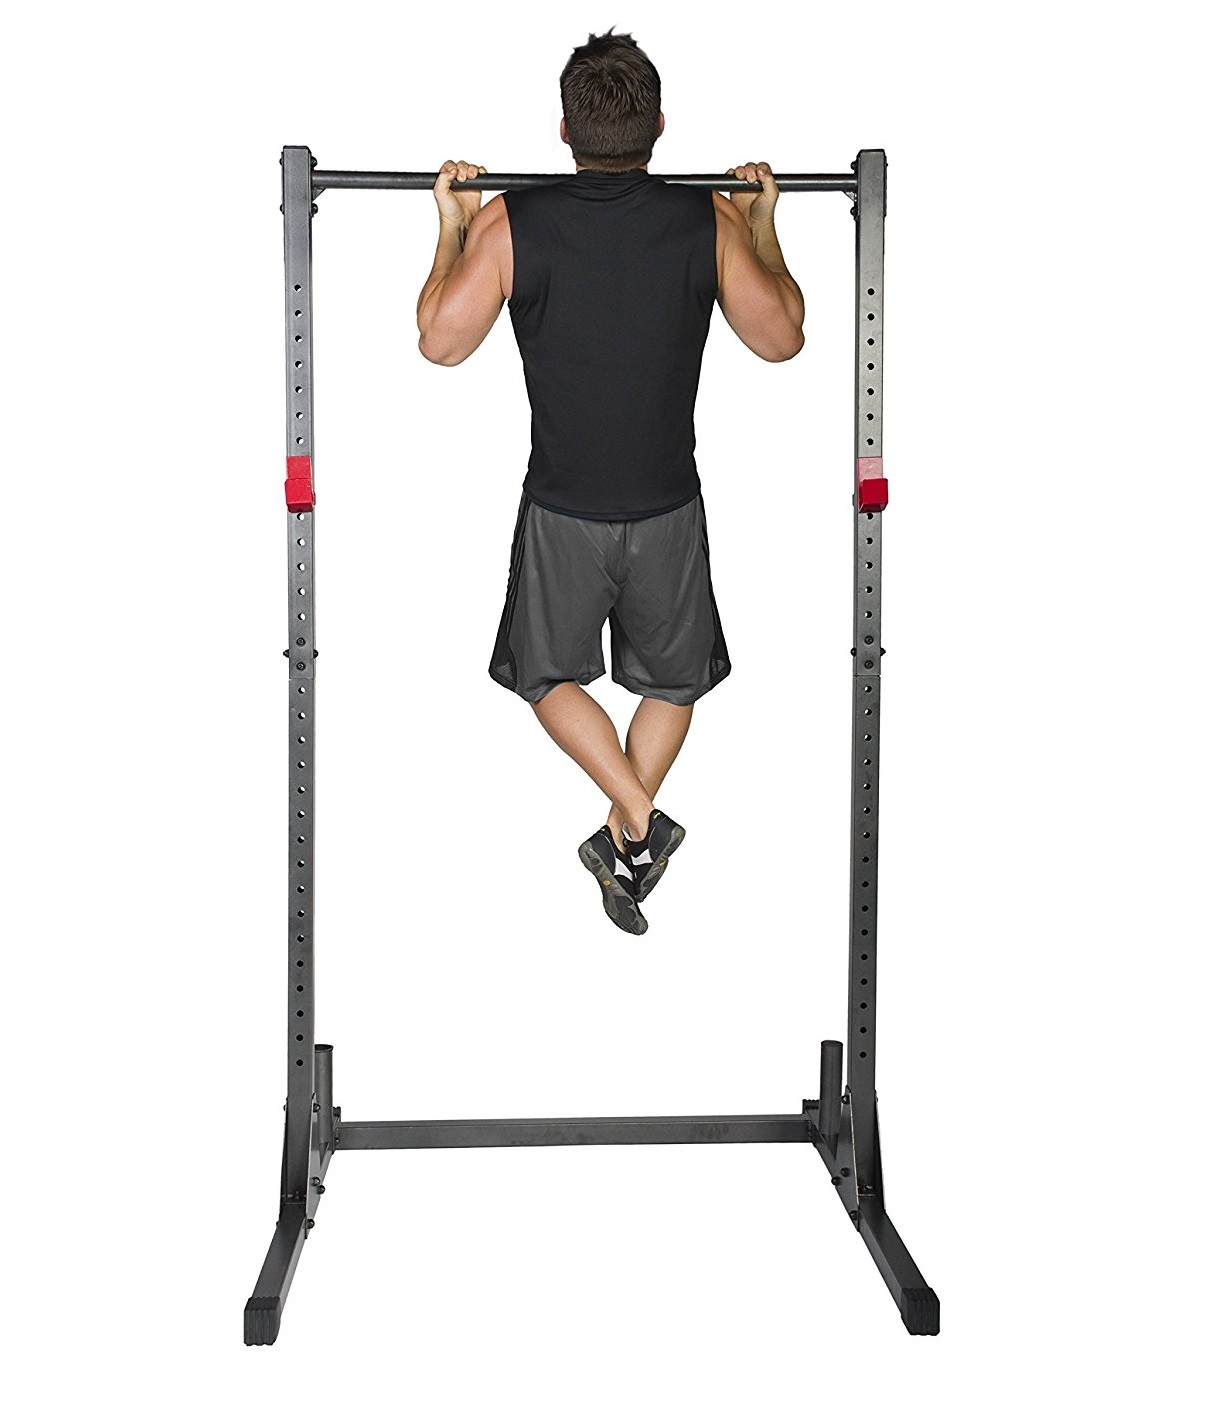 best squat rack with pull up bar 2018 reviews